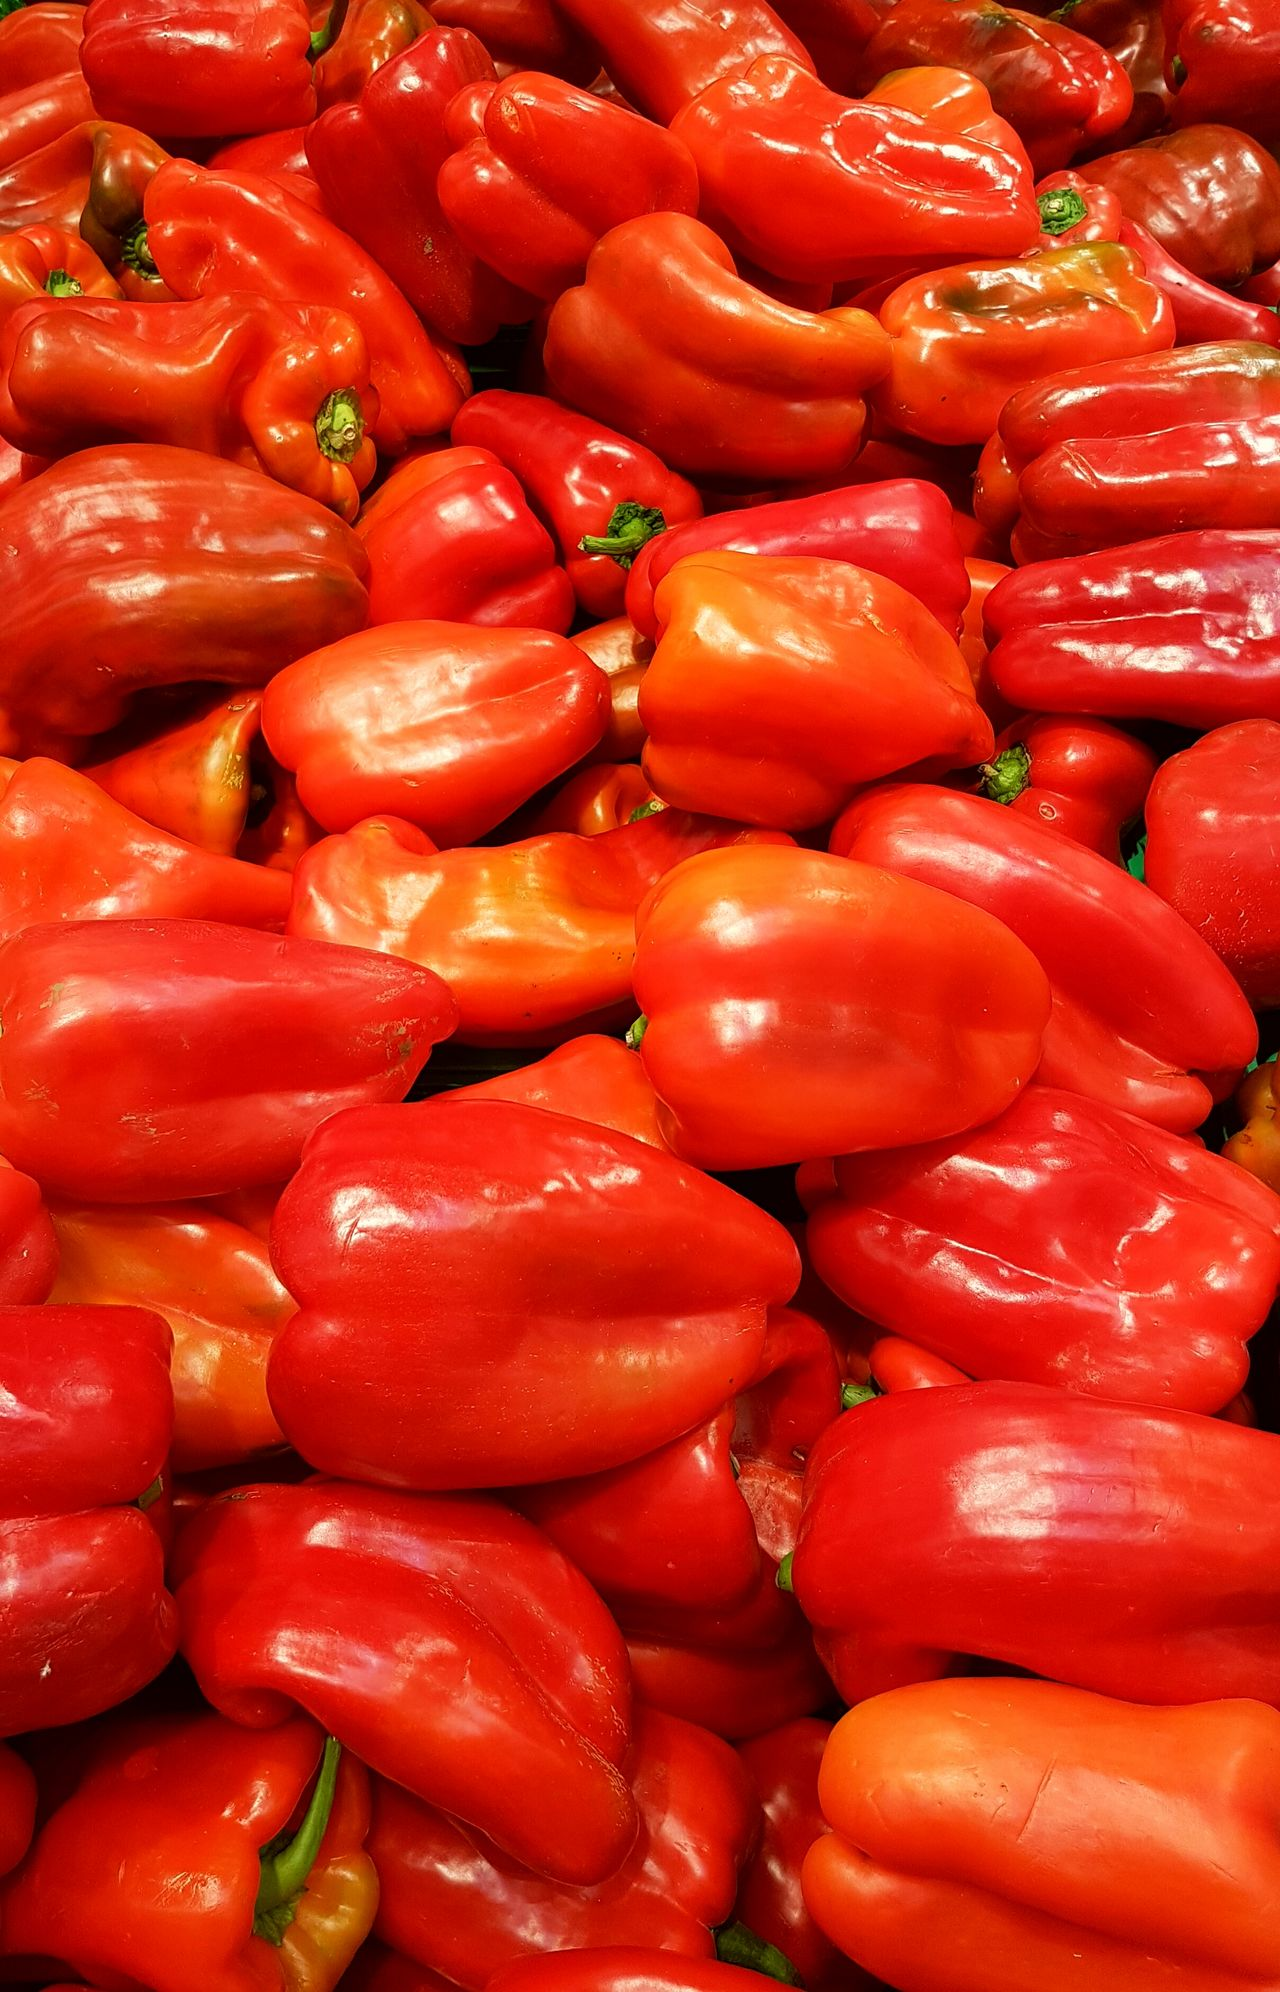 Shopping colours Full Frame Freshness Red Backgrounds Healthy Eating Vegetable Market Abundance Food And Drink Retail  For Sale Food Bell Pepper Red Bell Pepper Spice Red Chili Pepper No People Chili Pepper Close-up Farmer Market